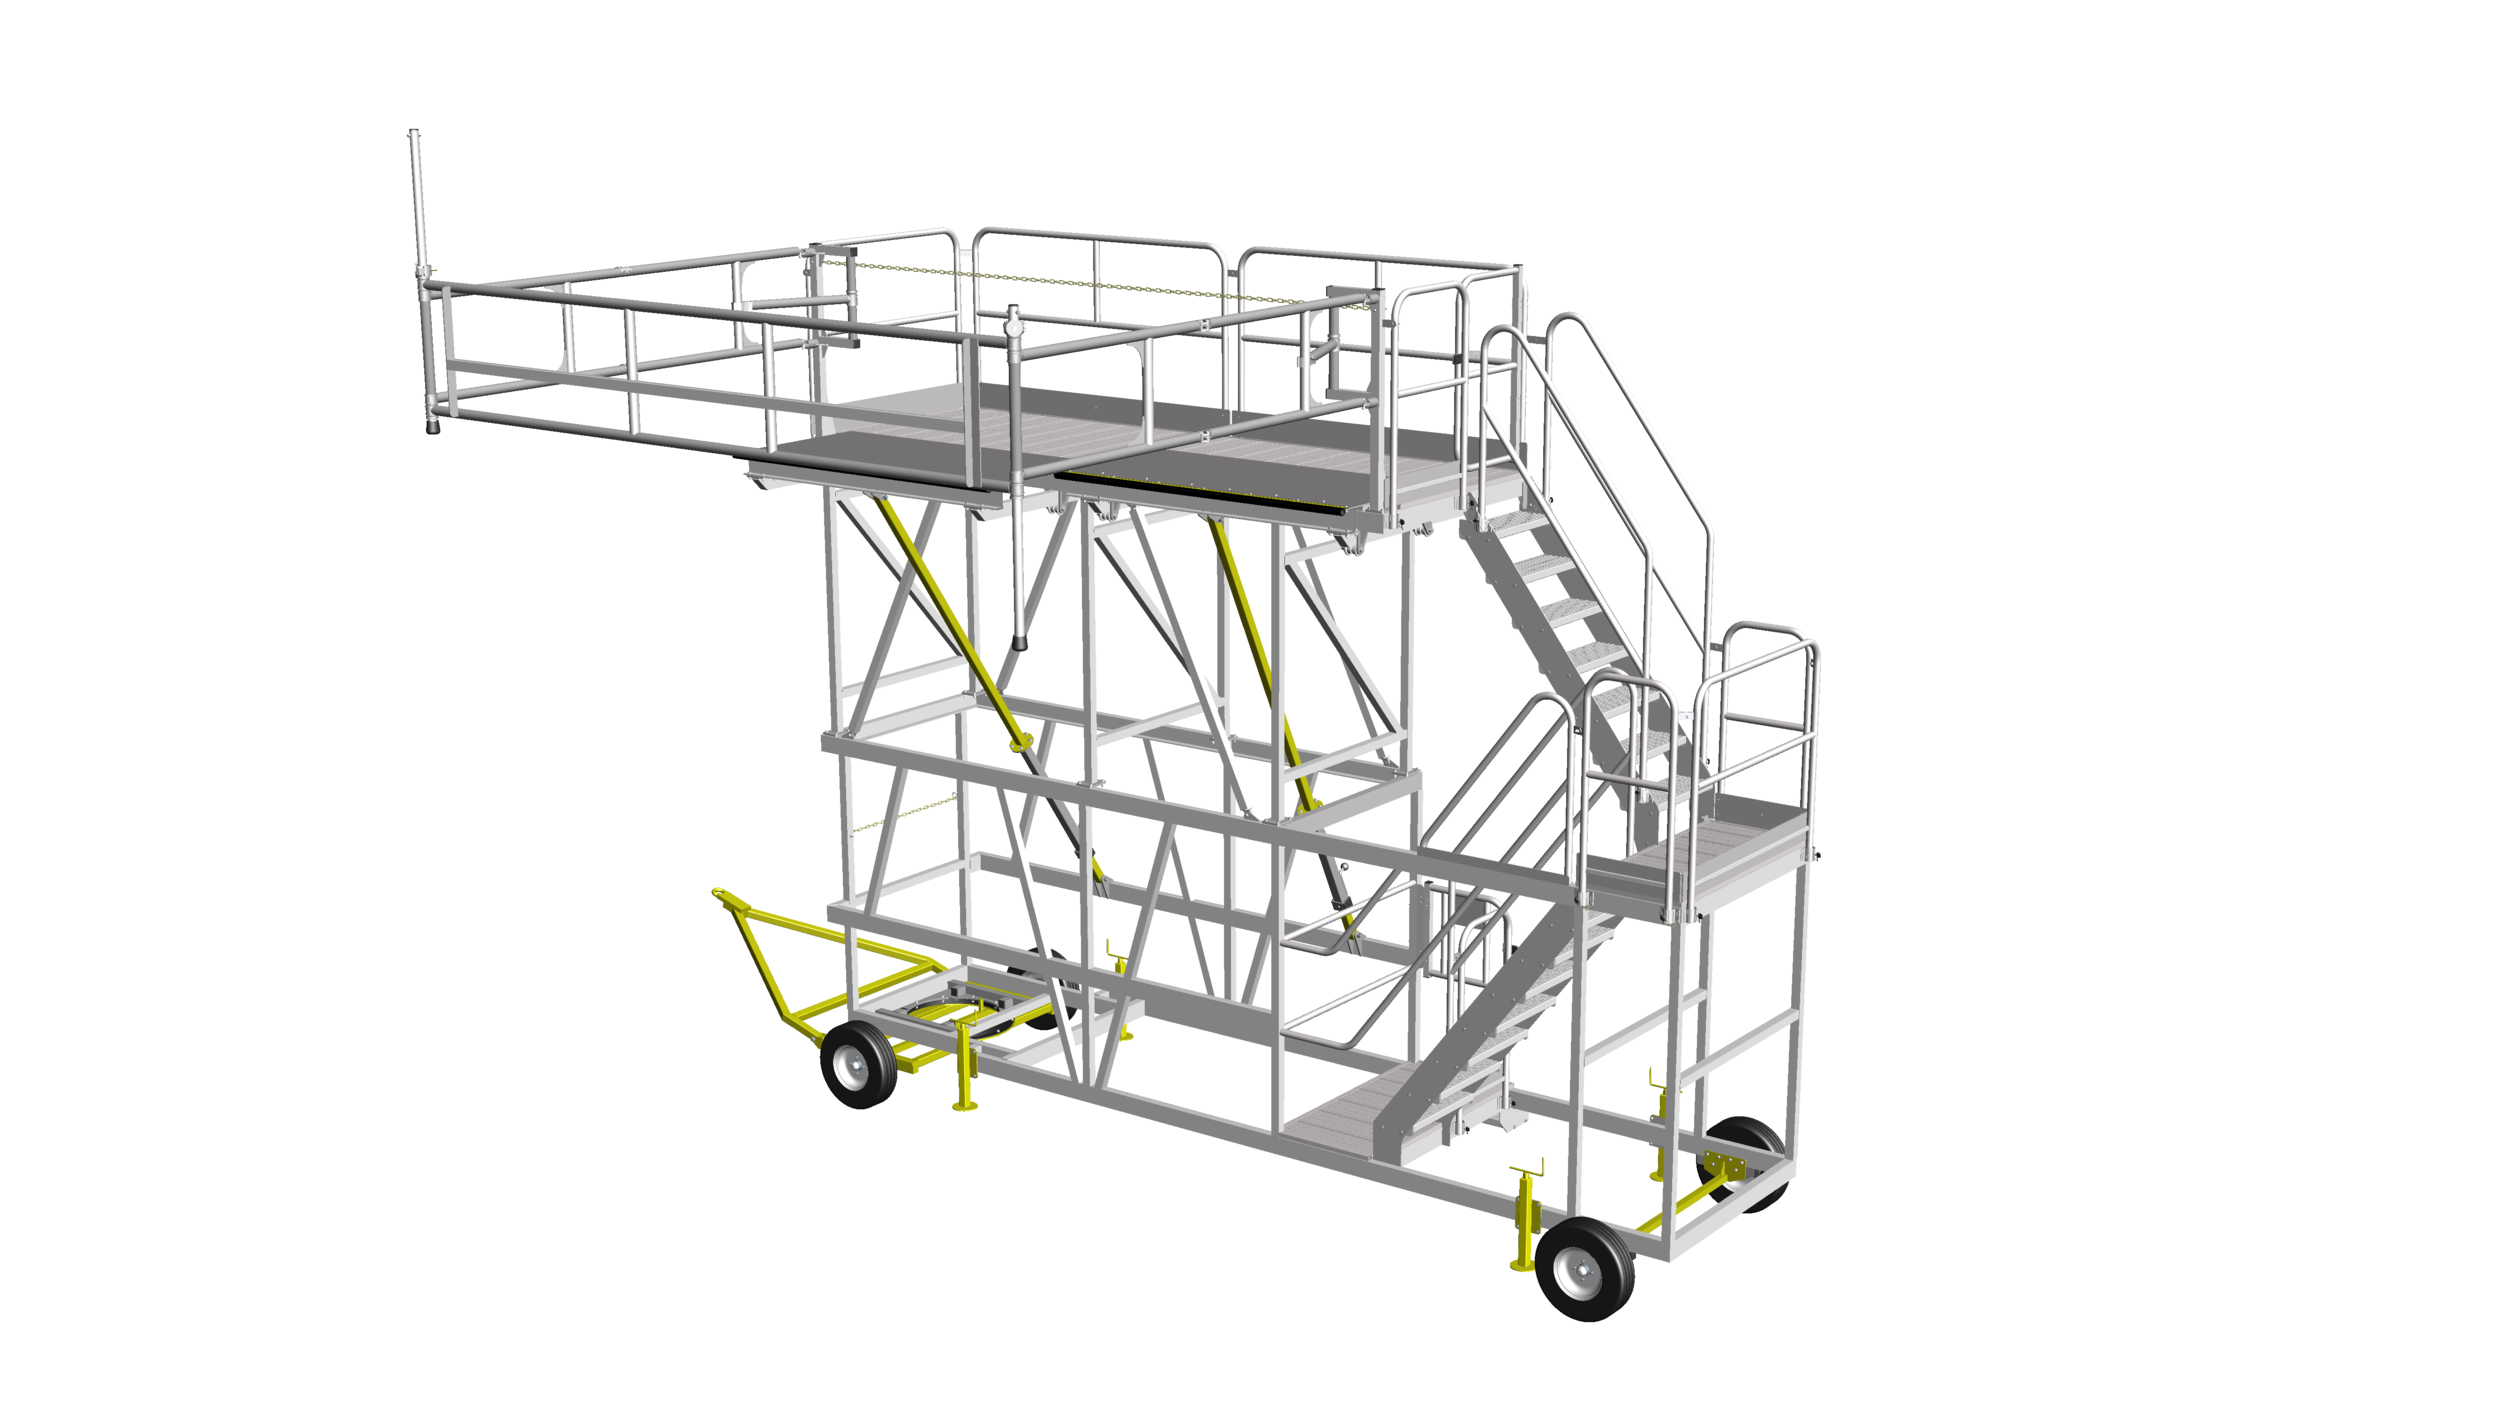 9. Towable carriage access system